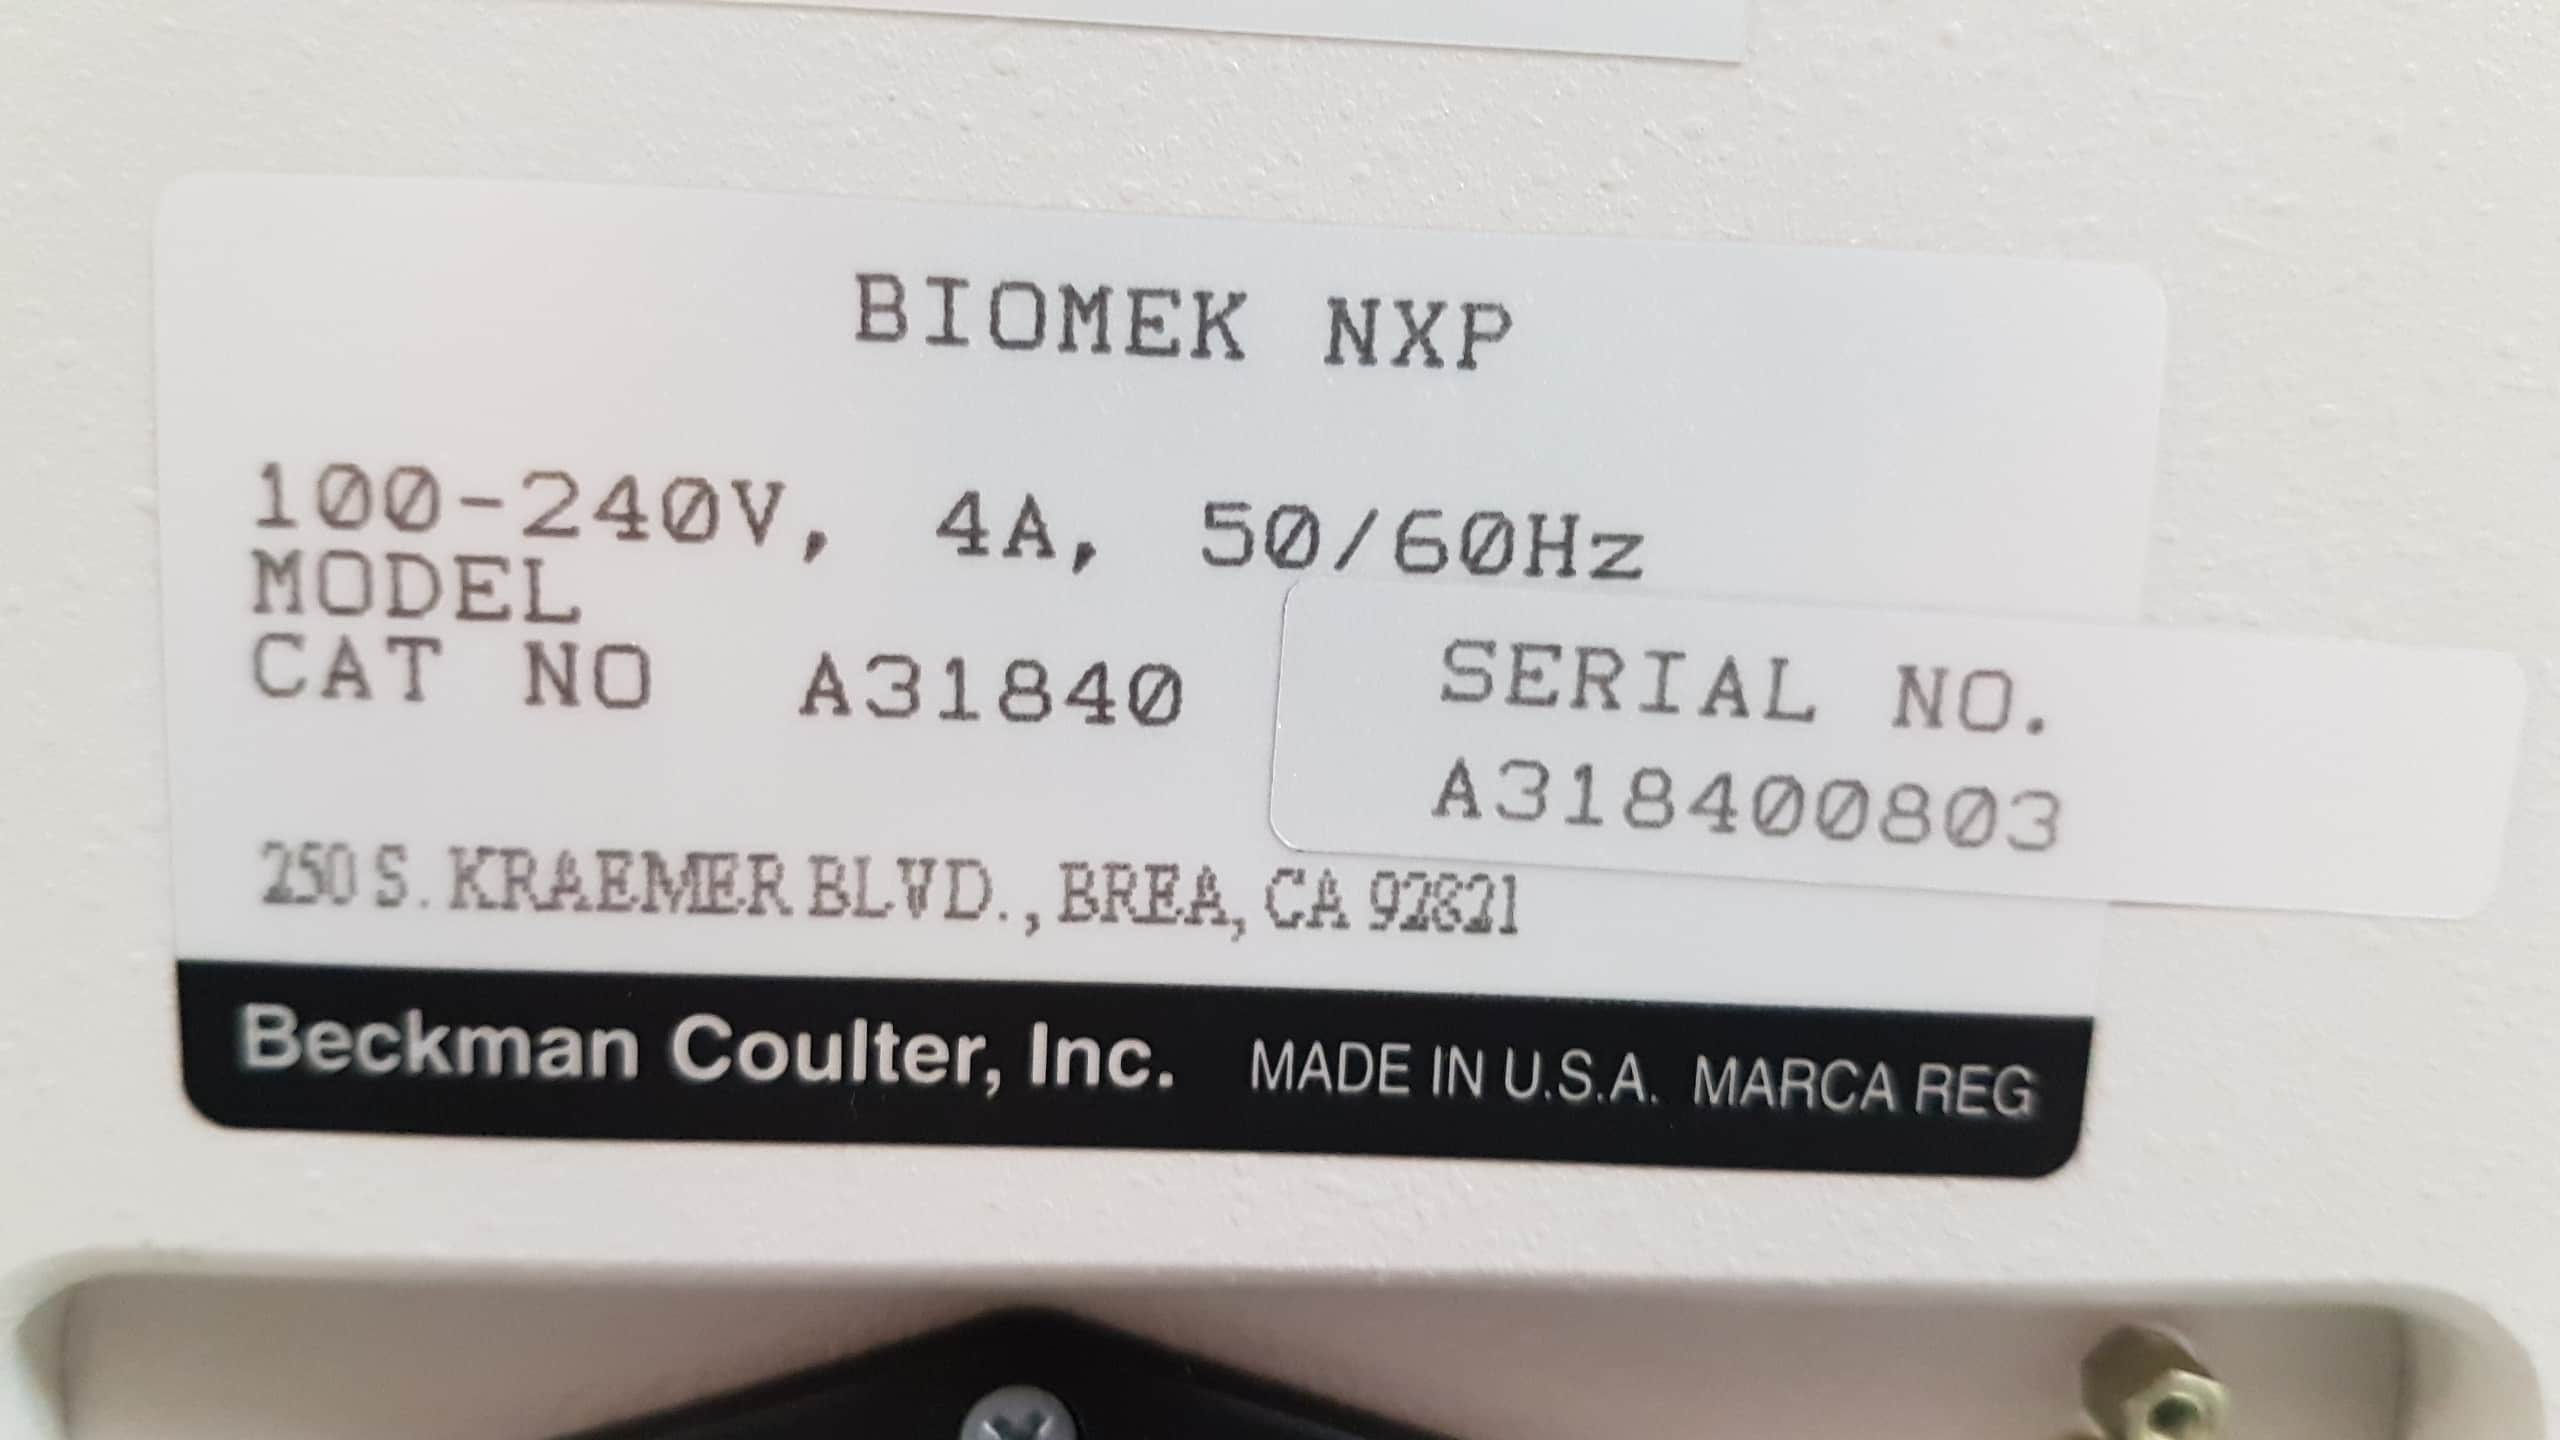 Beckman Coulter Biomek NXp with Span-8 and rotating gripper